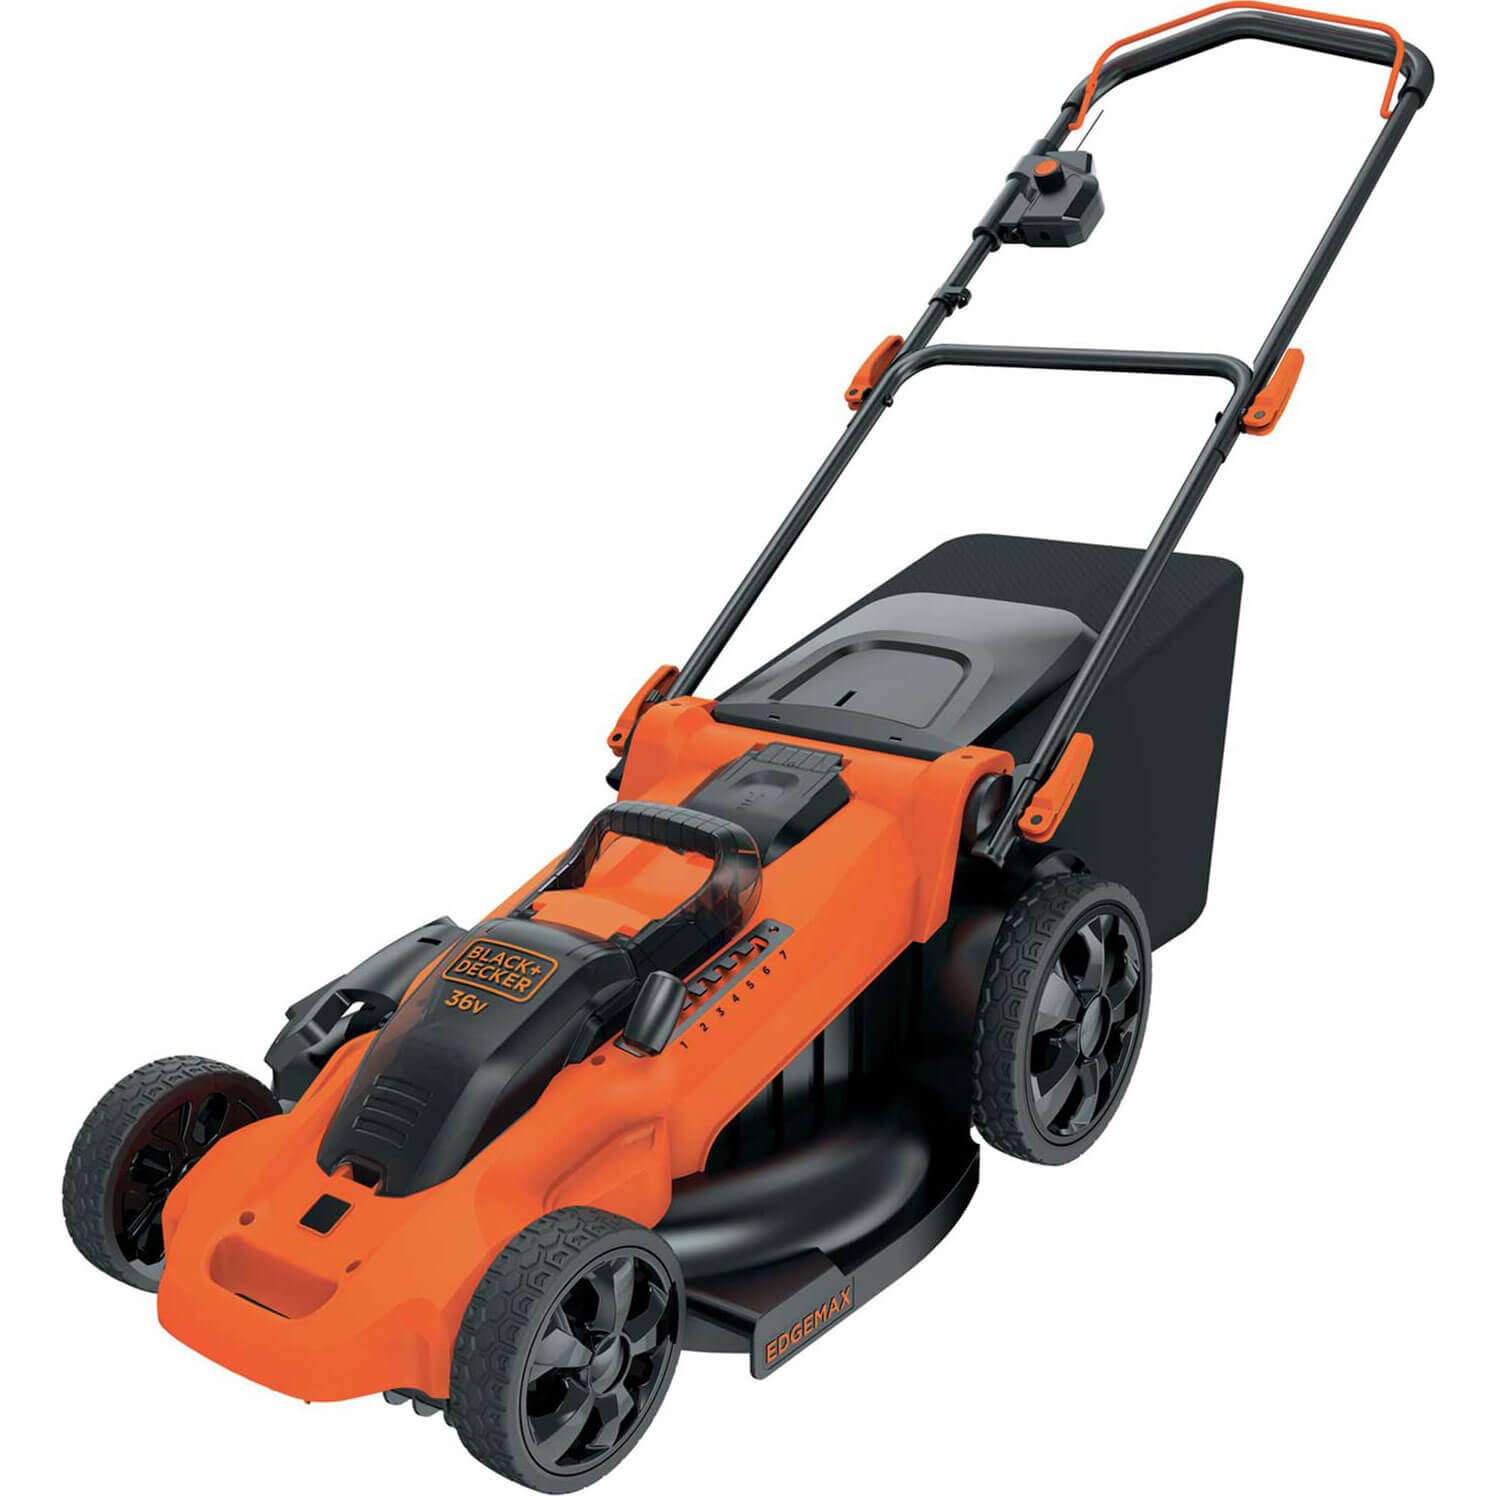 Image of Black and Decker CLMA4820L 36v Cordless Autosense Rotary Lawnmower 480mm No Batteries No Charger